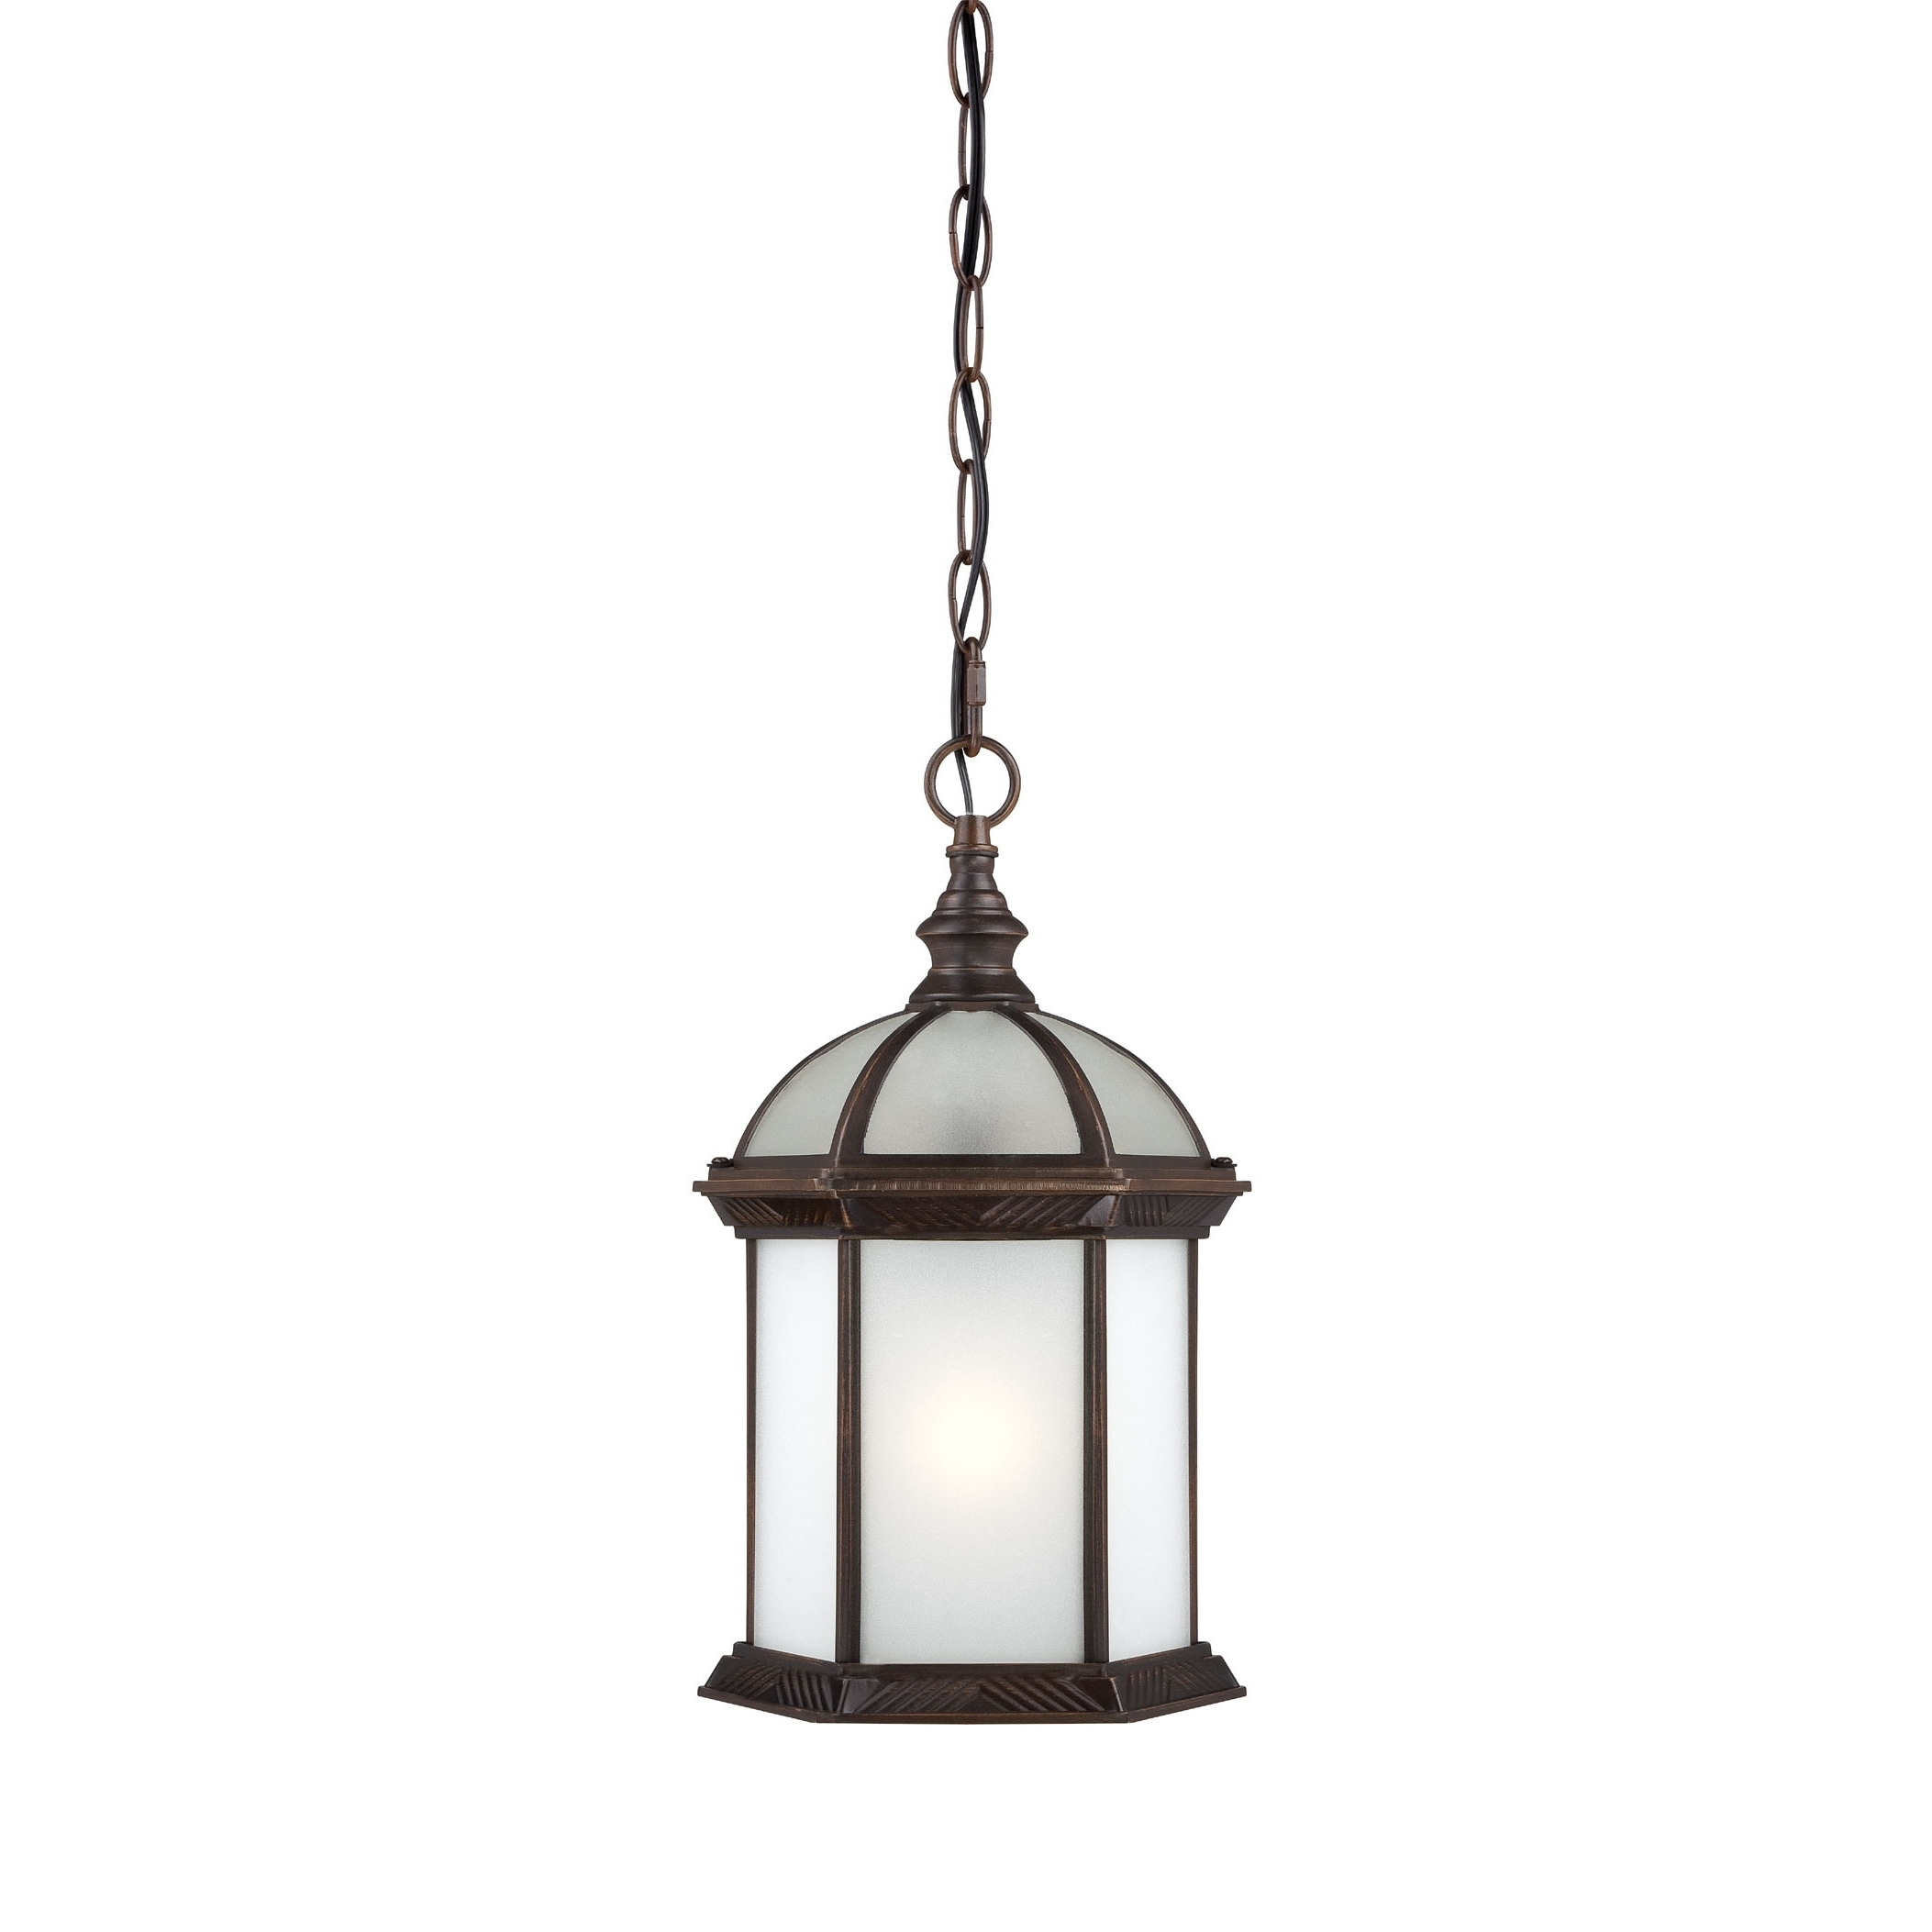 Mexican Outdoor Lighting - Outdoor Lighting Ideas intended for Outdoor Mexican Lanterns (Image 13 of 20)